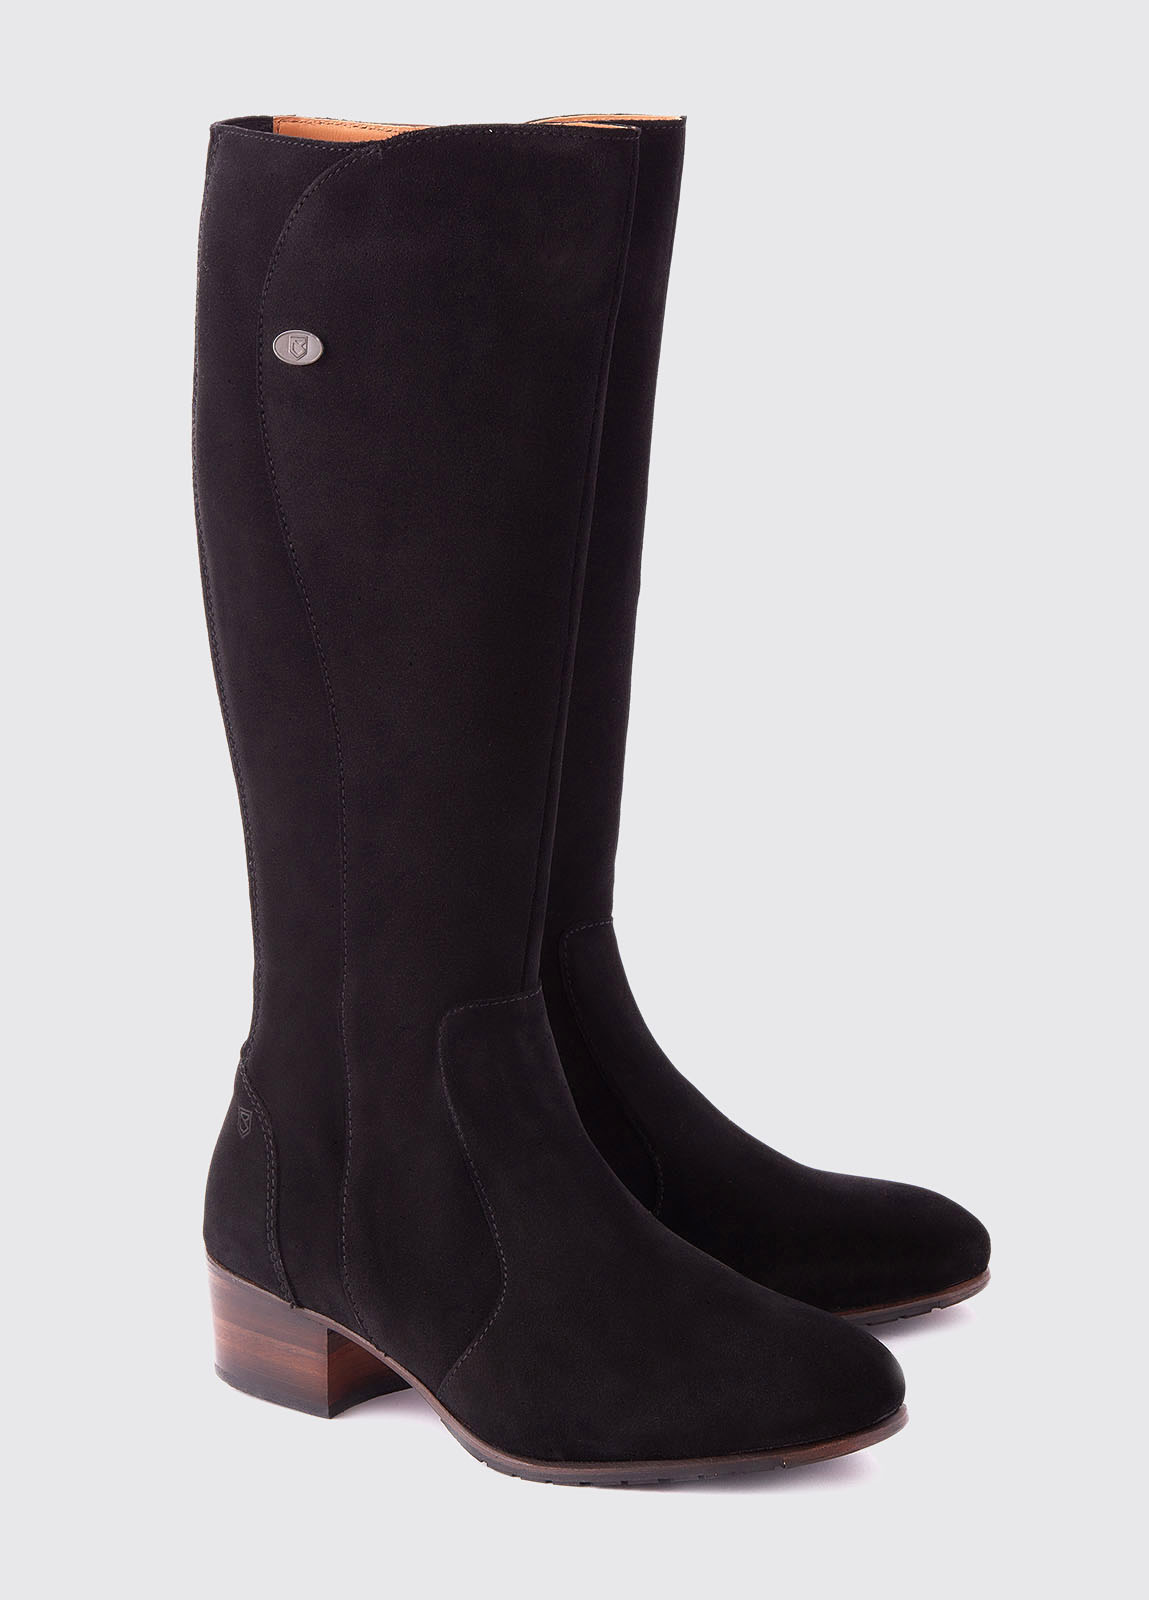 Downpatrick Knee High Boot - Black Suede